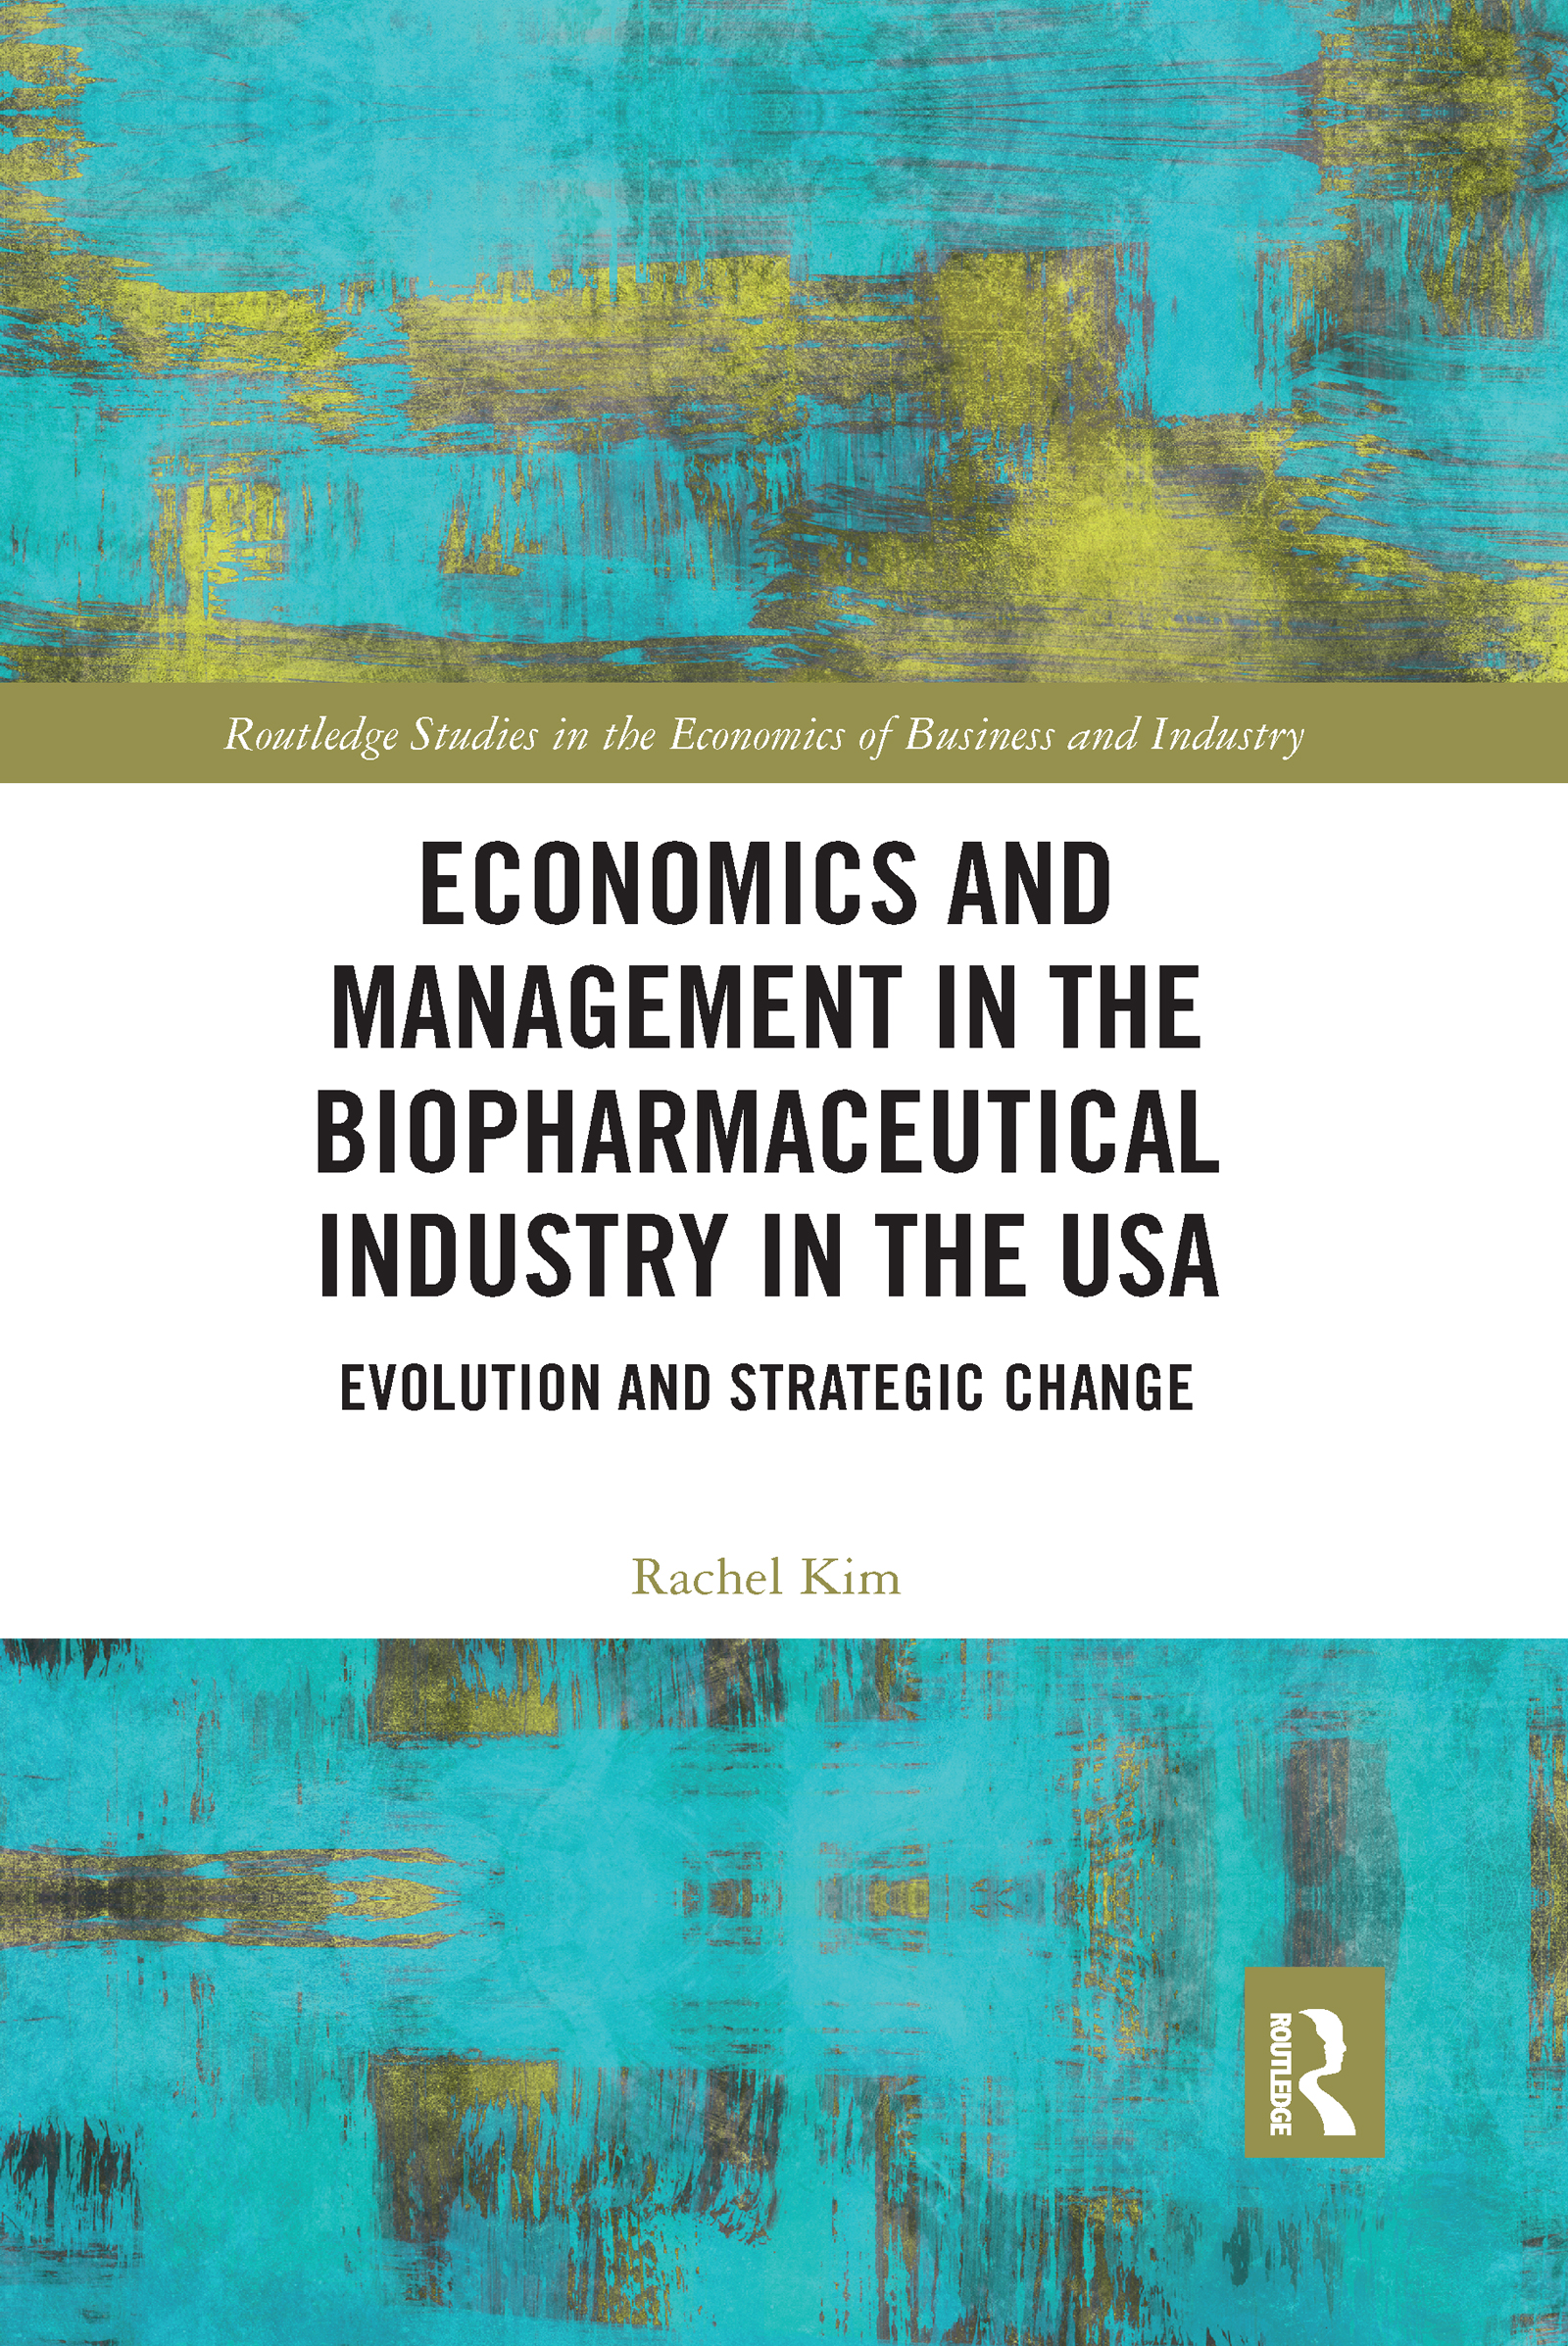 Economics and Management in the Biopharmaceutical Industry in the USA